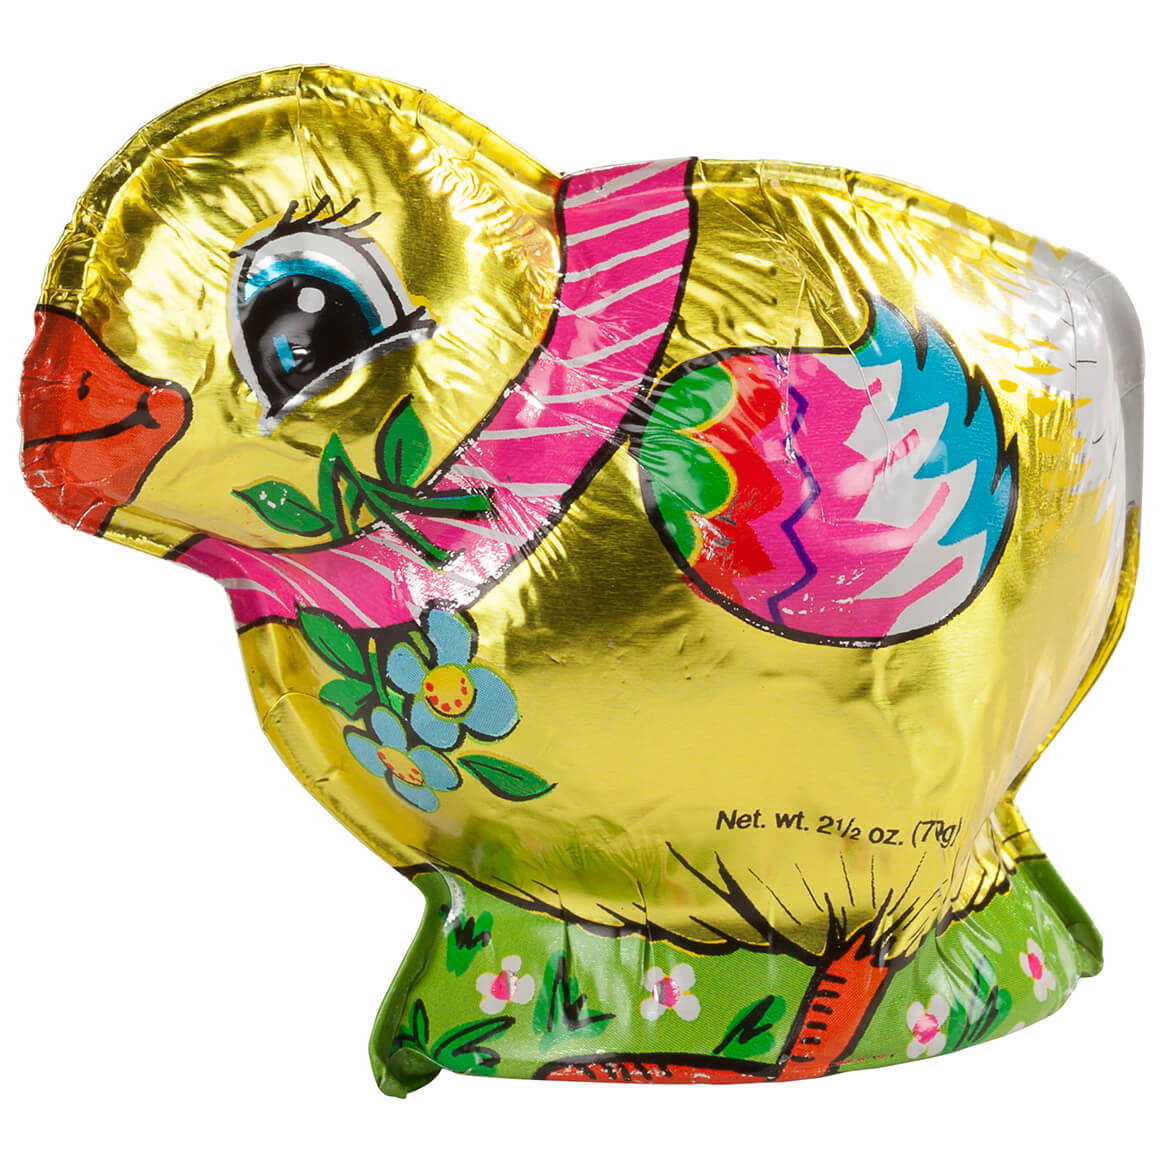 Madelaine® Chocolate Foil Wrapped Chocolate Chick, 2.5 oz.